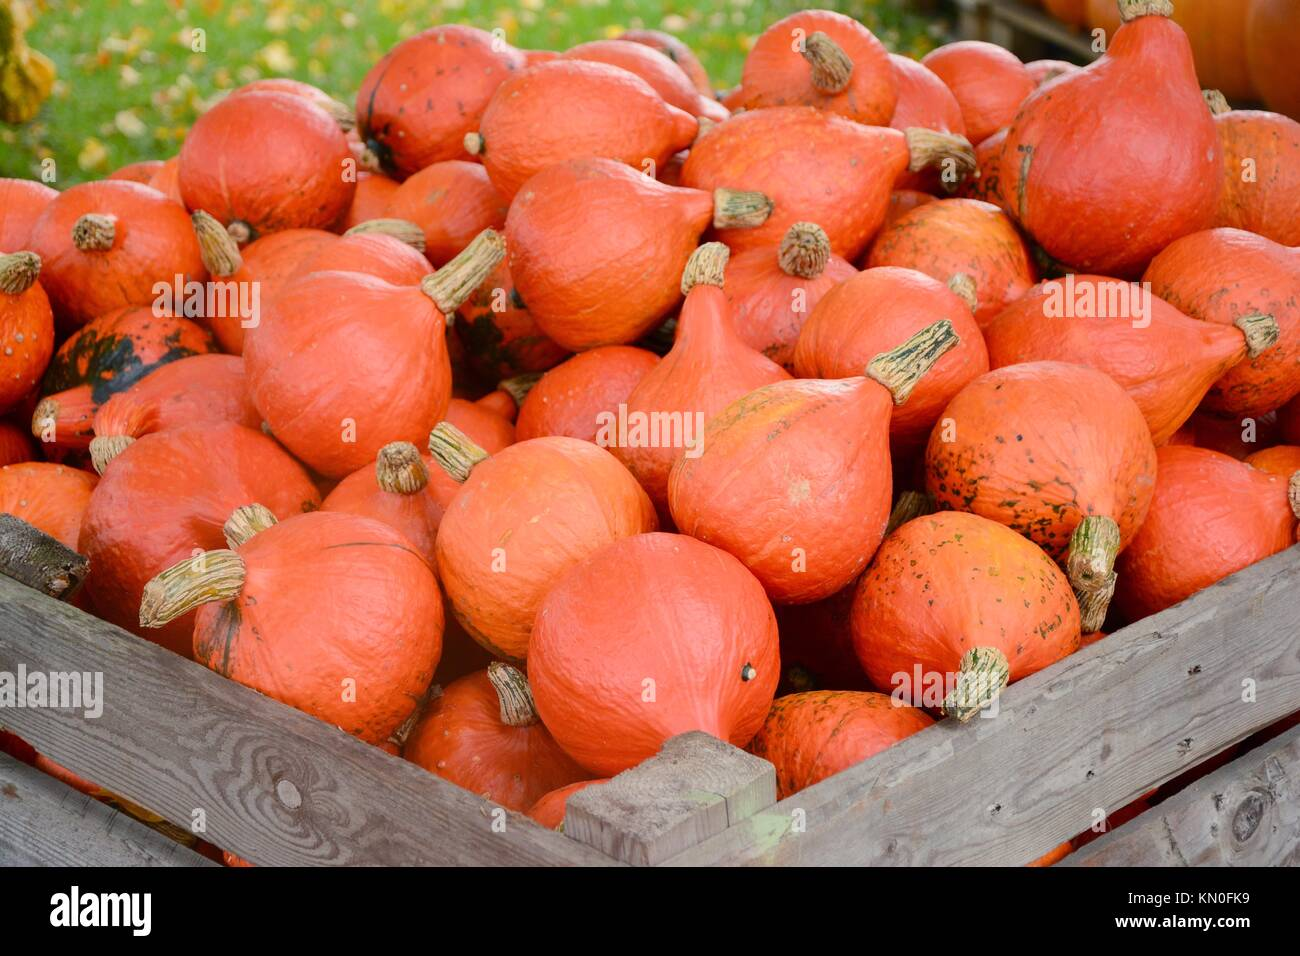 Red kuri squash in a large wooden crate Stock Photo